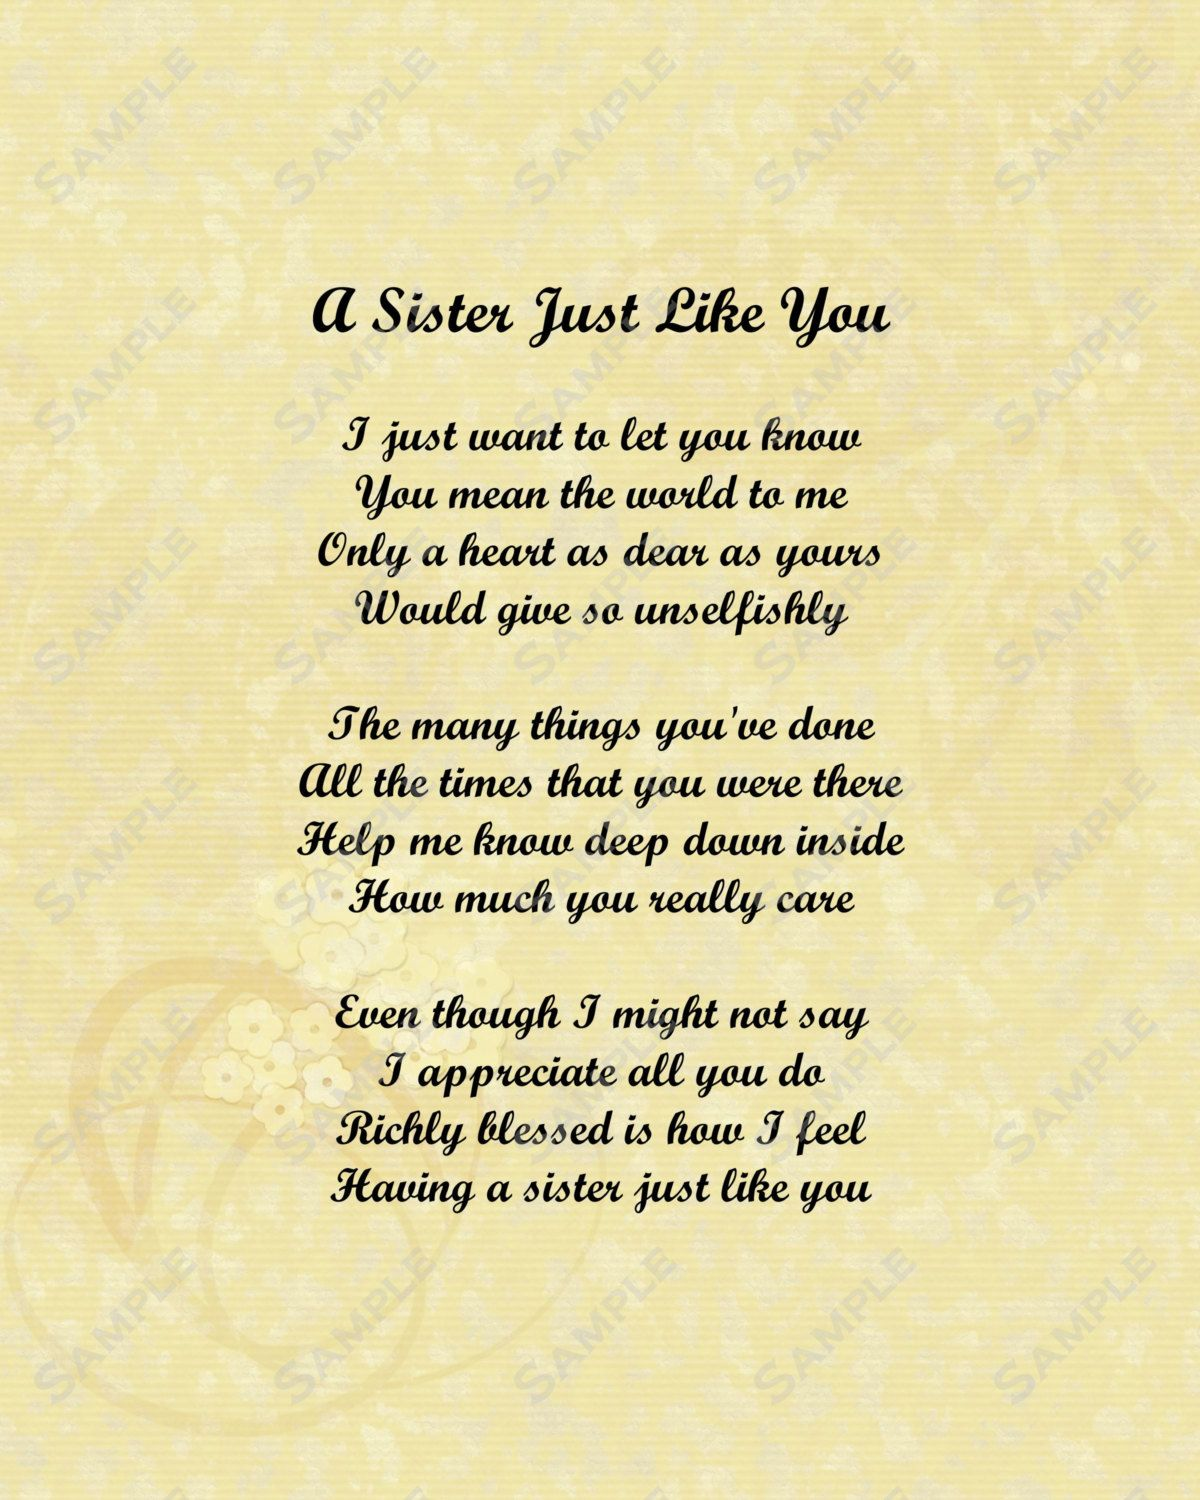 I Love Quotes For Sisters My Sister And Poems Poem 8